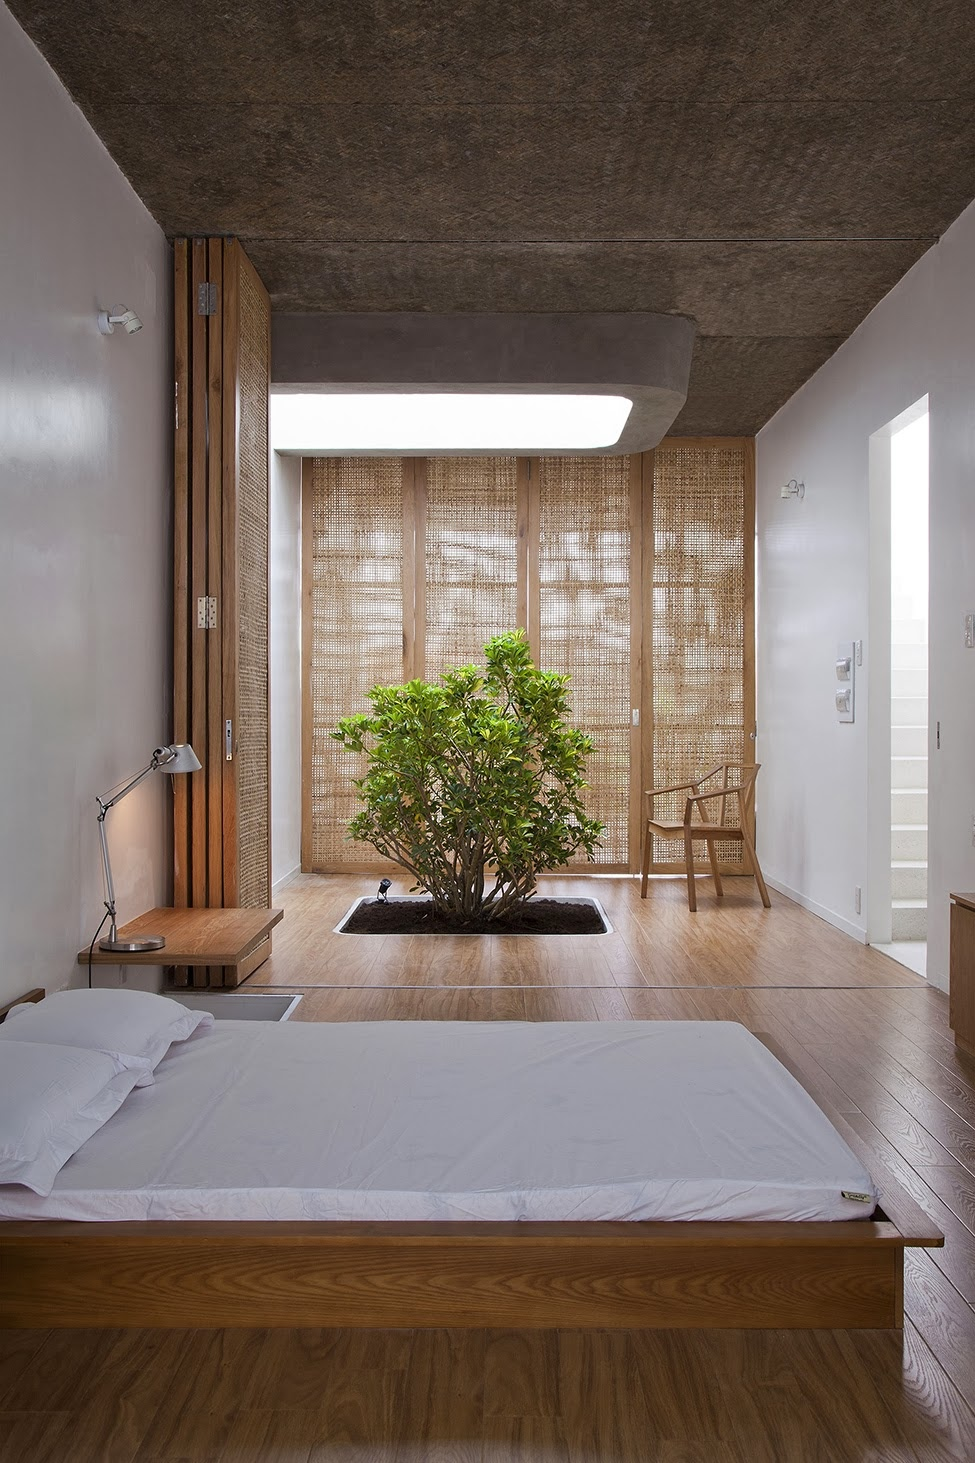 Zen inspired interior design for Asian minimalist interior design